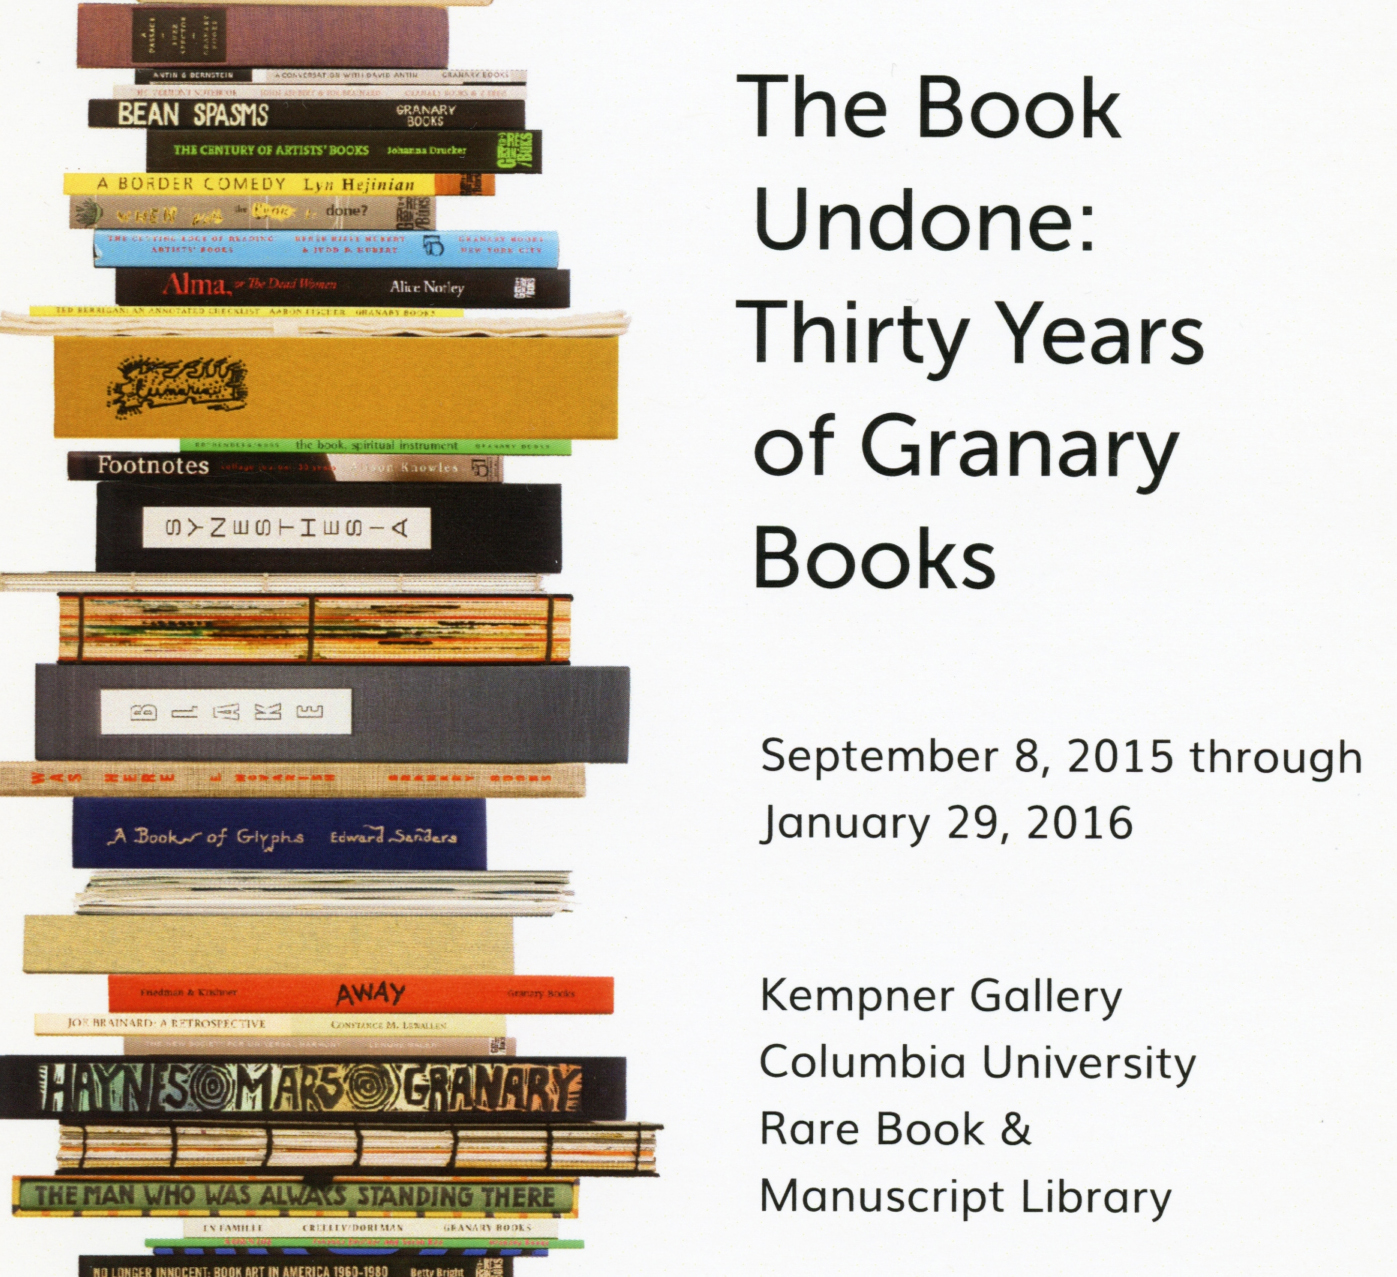 The Book Undone: Thirty Years of Granary Books